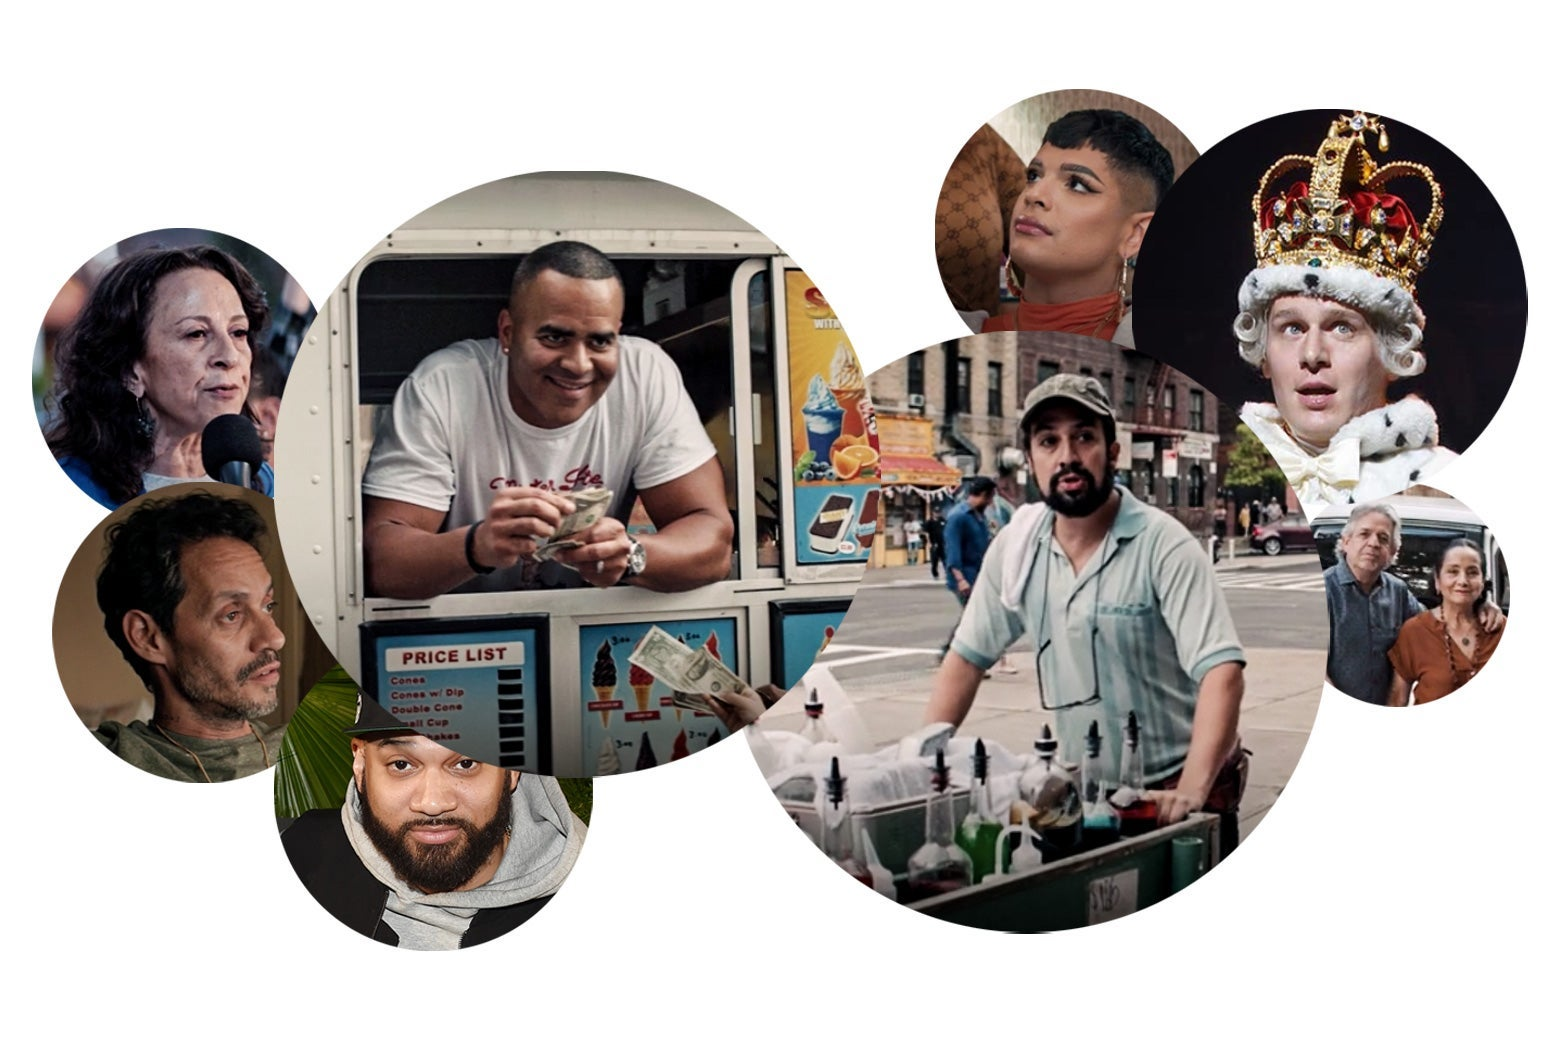 A collage showing Lin-Manuel Miranda pushing a cart, Chris Jackson leaning out the window of an ice-cream truck, Valentina in a salon chair, a press photo of the Kid Mero, Marc Anthony lookin' scraggly, Maria Hinojosa, Lin-Manuel Miranda's parents, and King George III, standing beneath his crown